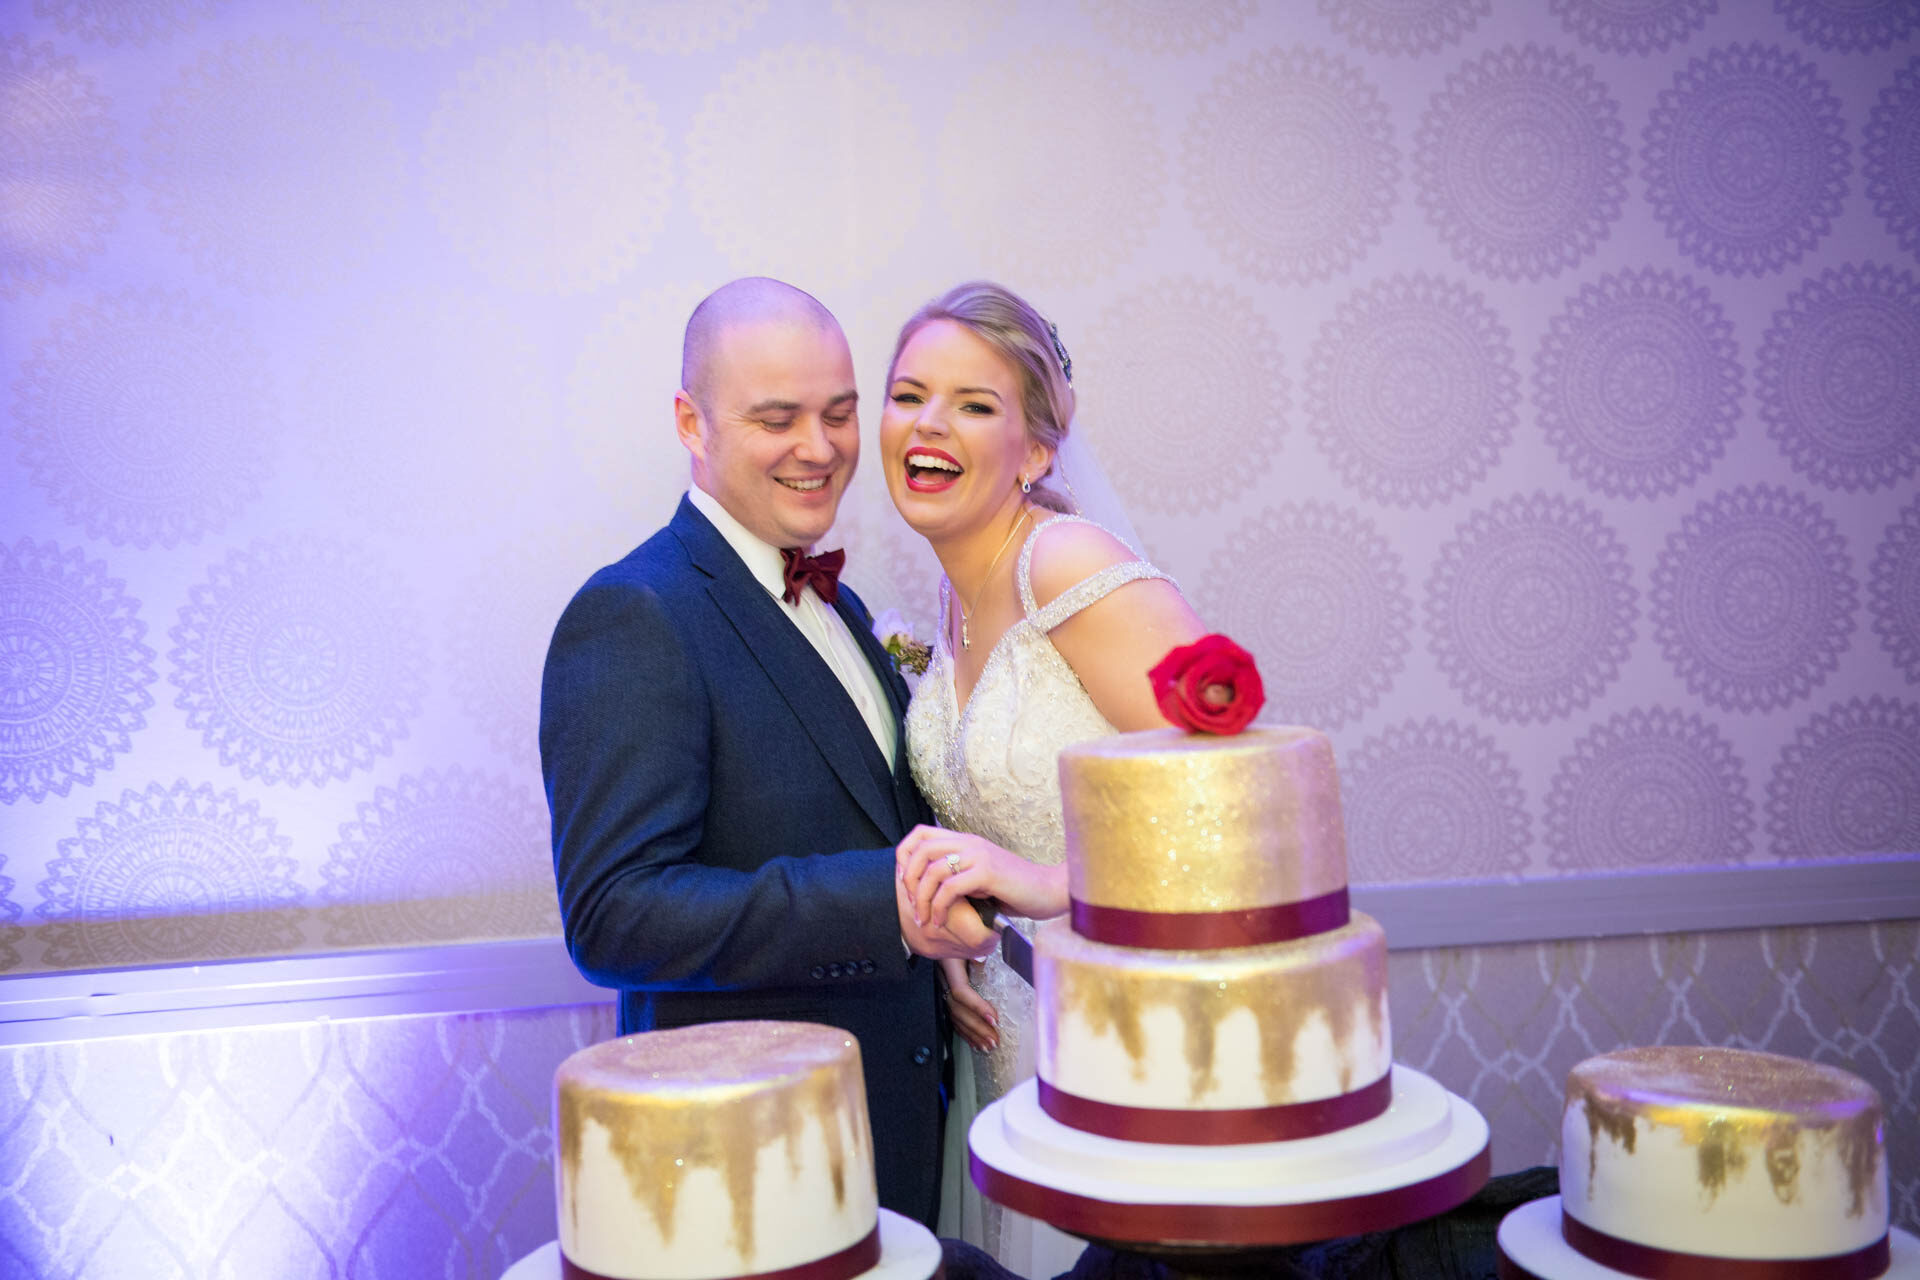 Picture of Tayna and Niall at Cavan Crystal Hotel, Cavan, on their wedding day captured by Fermanagh, Tyrone and Northern Ireland Wedding Photographer, Trevor Lucy Photography